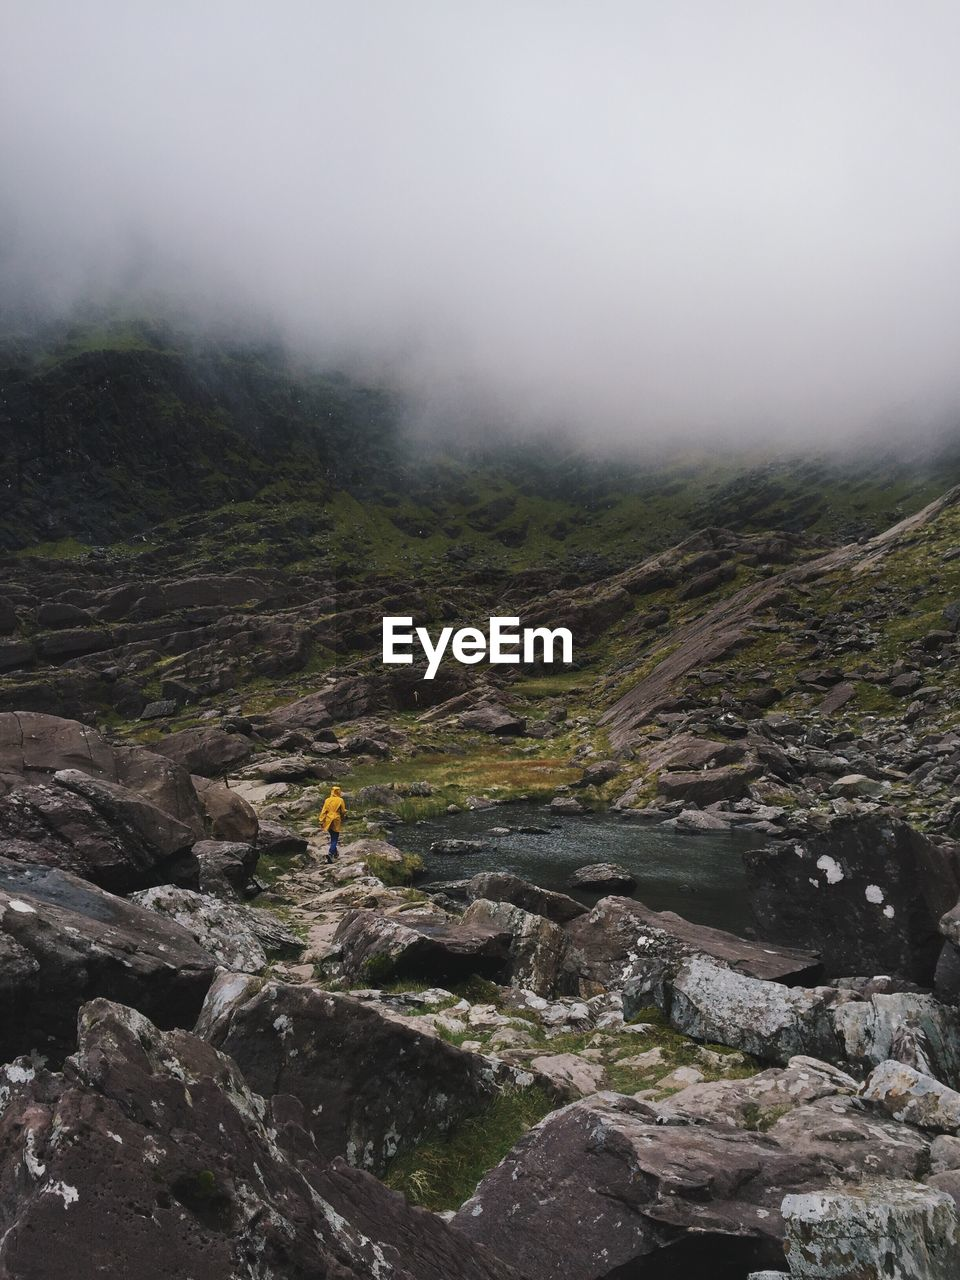 fog, landscape, adventure, mountain, nature, outdoors, scenics, tranquil scene, day, rock - object, one person, beauty in nature, real people, wilderness, tranquility, hiking, leisure activity, sky, challenge, full length, extreme sports, men, one man only, people